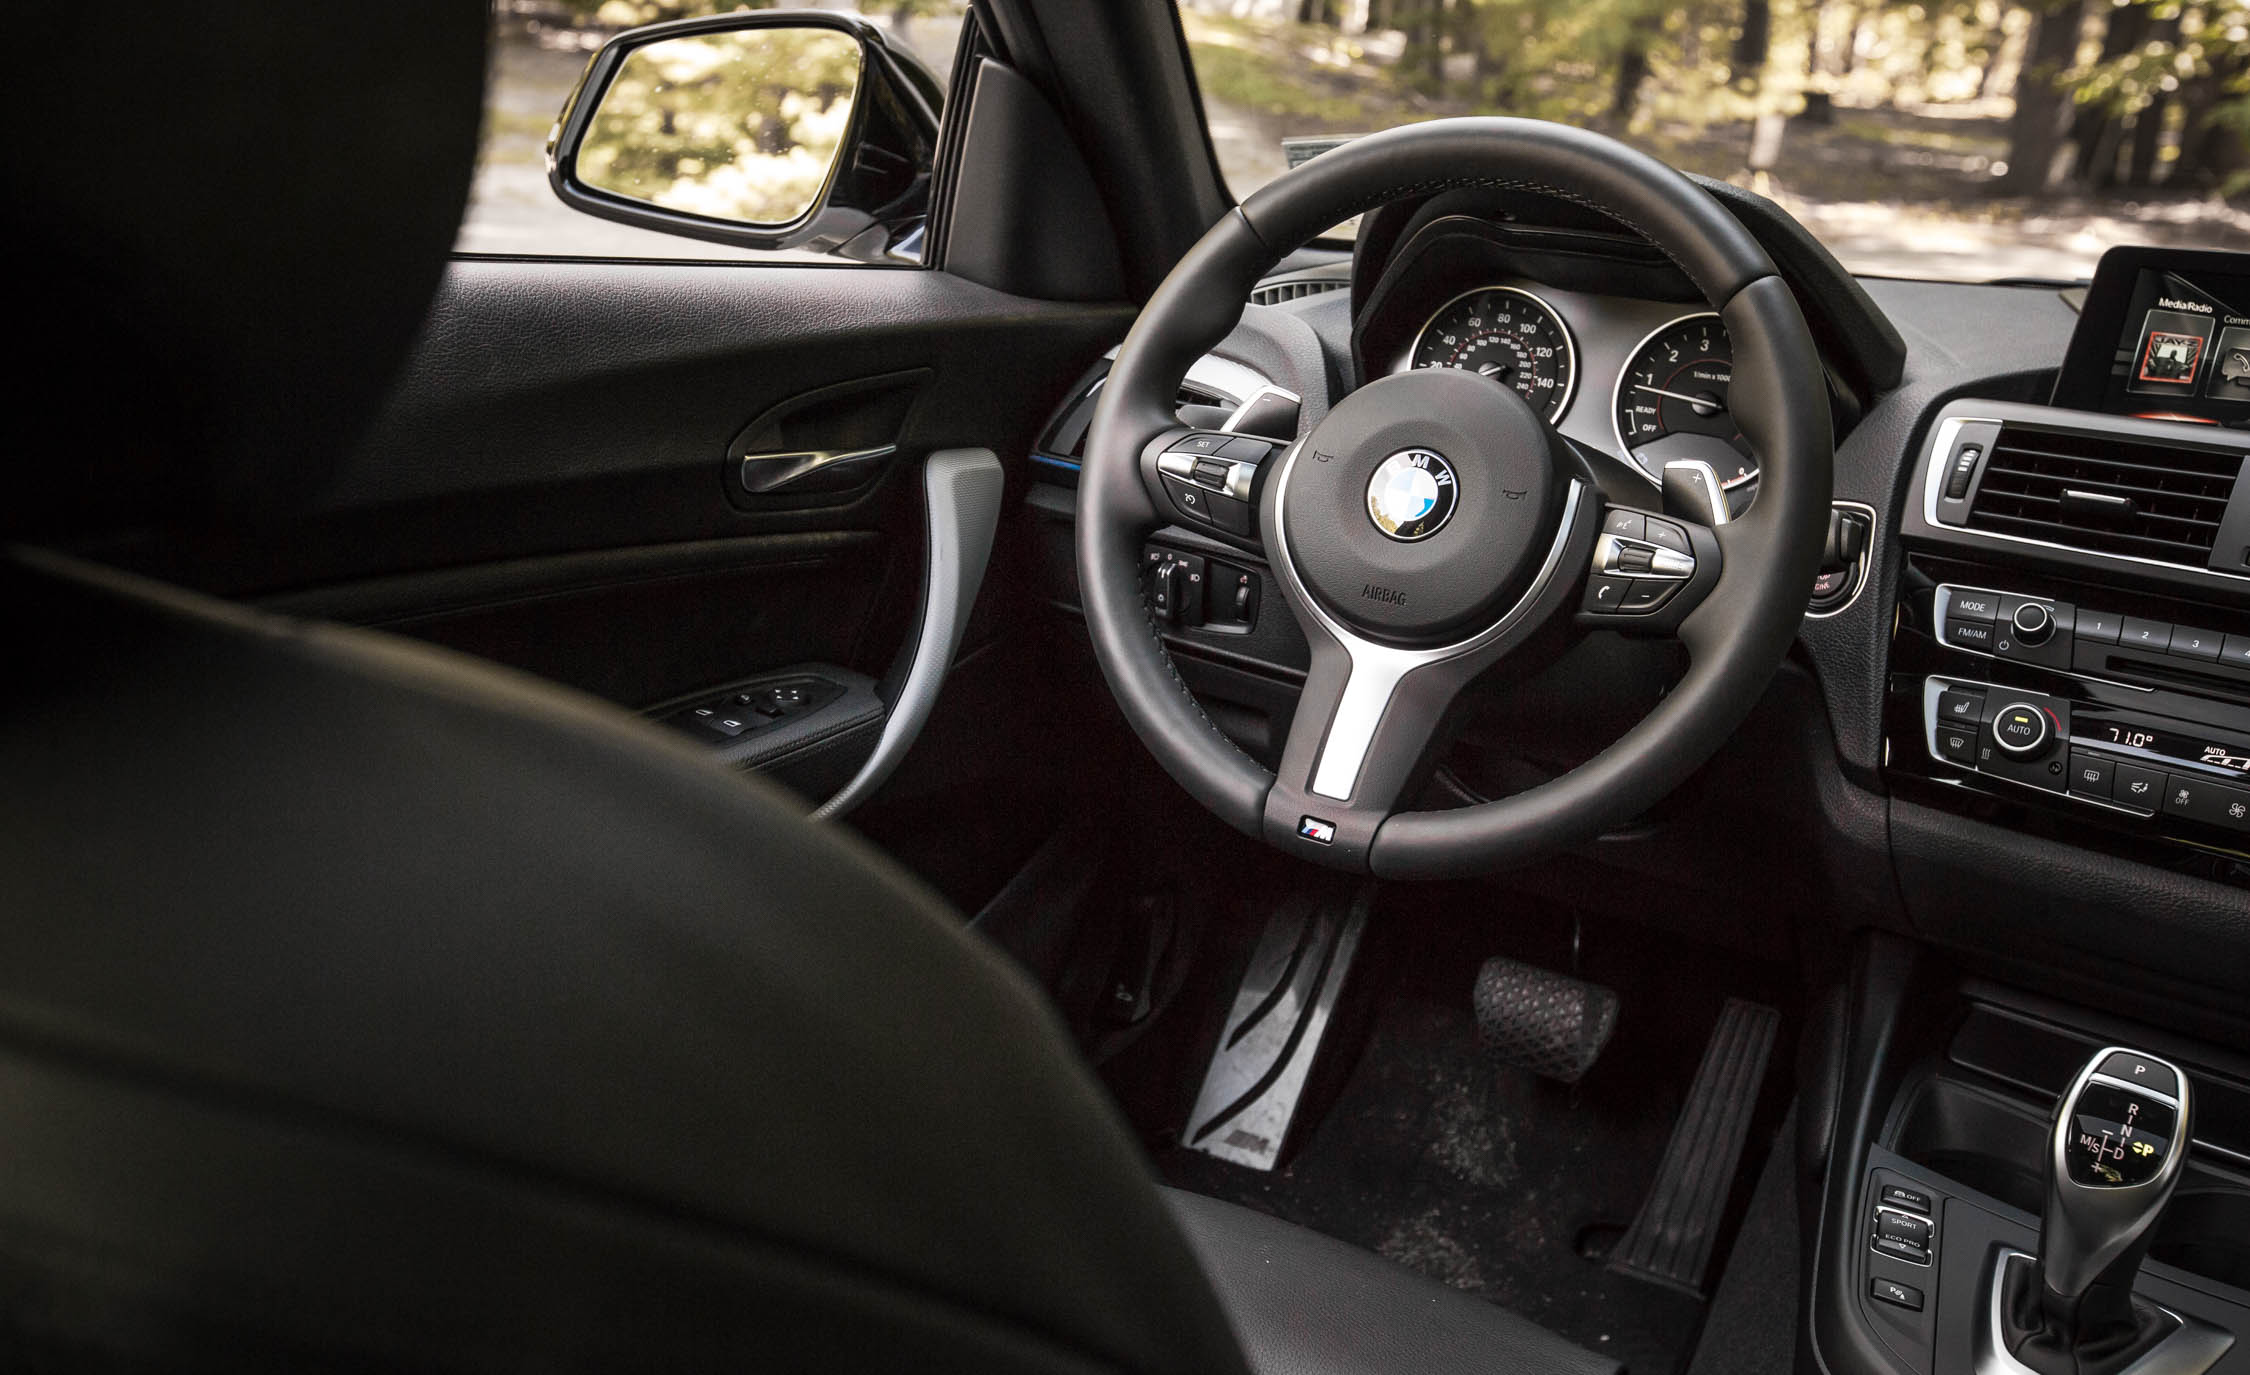 2017 BMW M240i Coupe Automatic Interior Driver Cockpit (View 11 of 36)